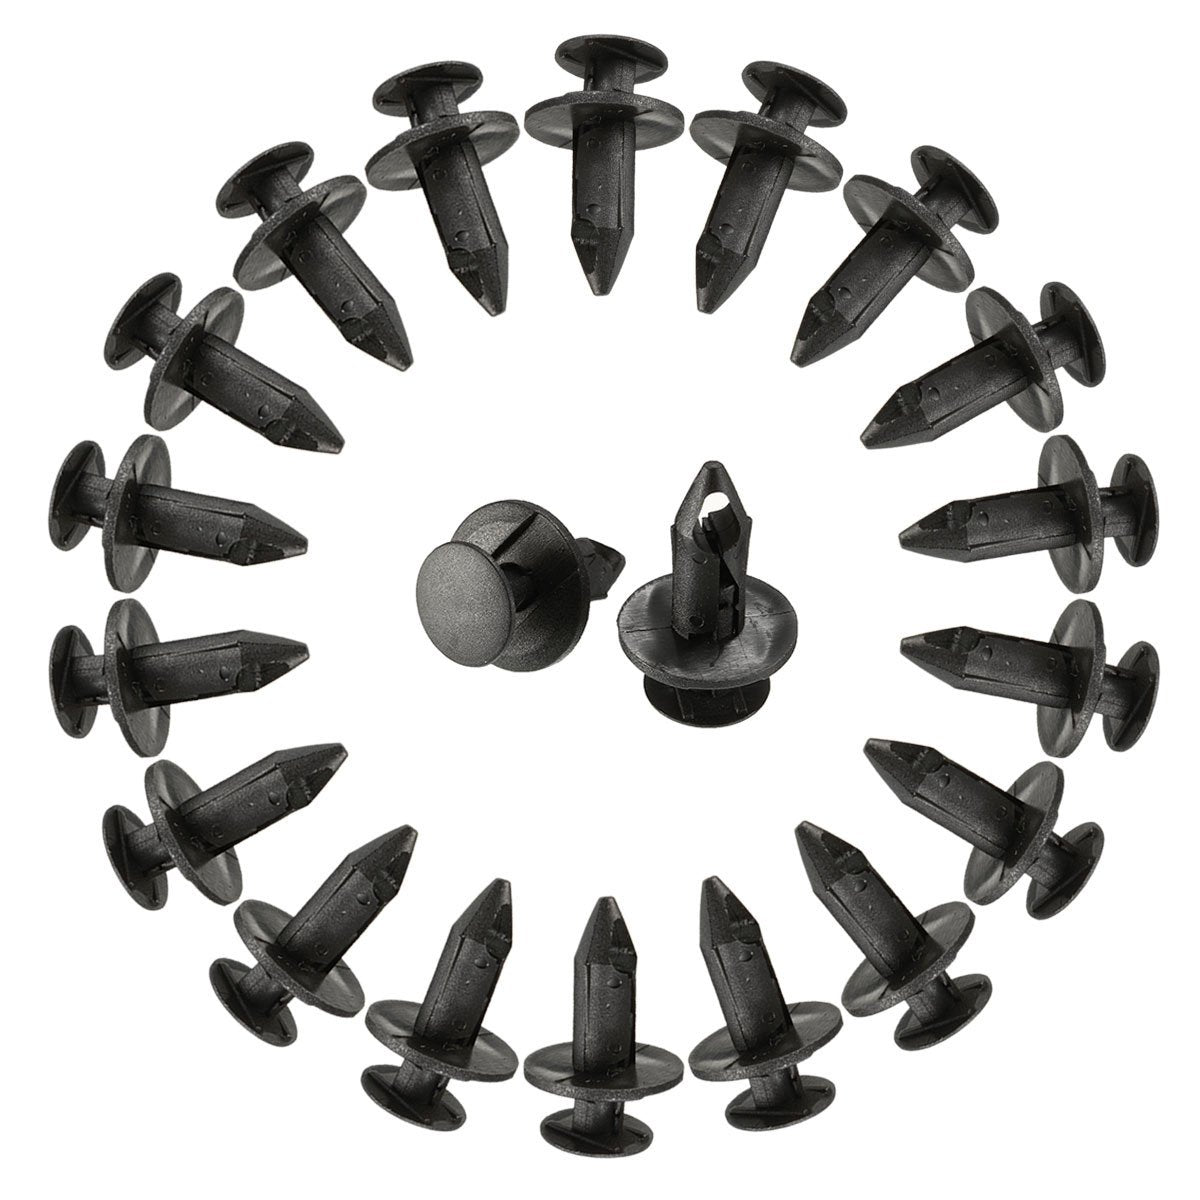 100 Pcs set 8mm Hole Dia Plastic Rivets Fastener Push Clips Black for Car Auto